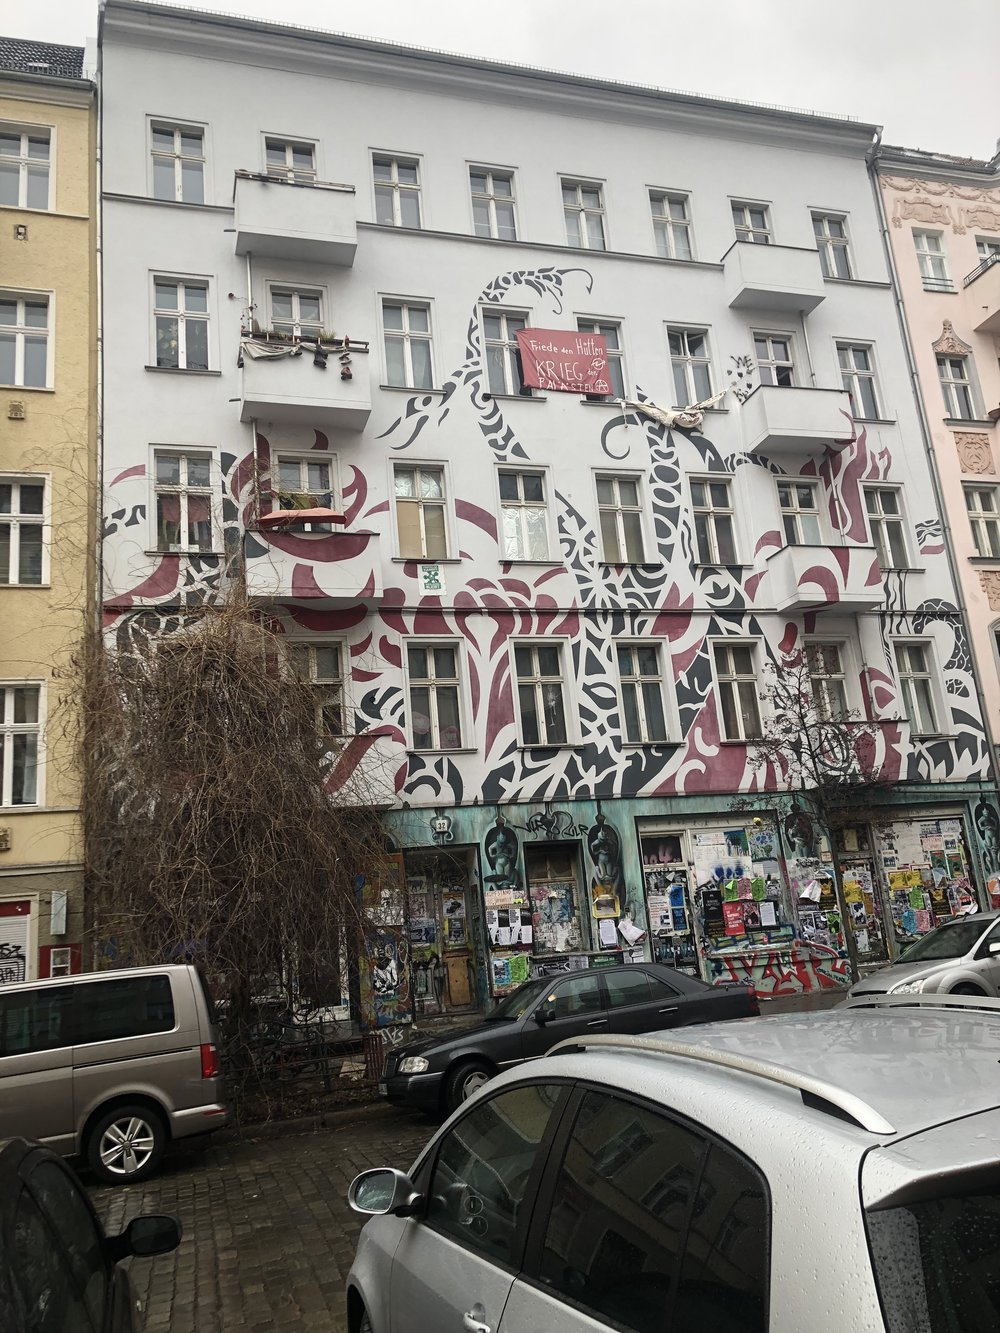 Another squatted building located on Samariter Straße, around the corner. There's a cafe inside as well as a space for events.